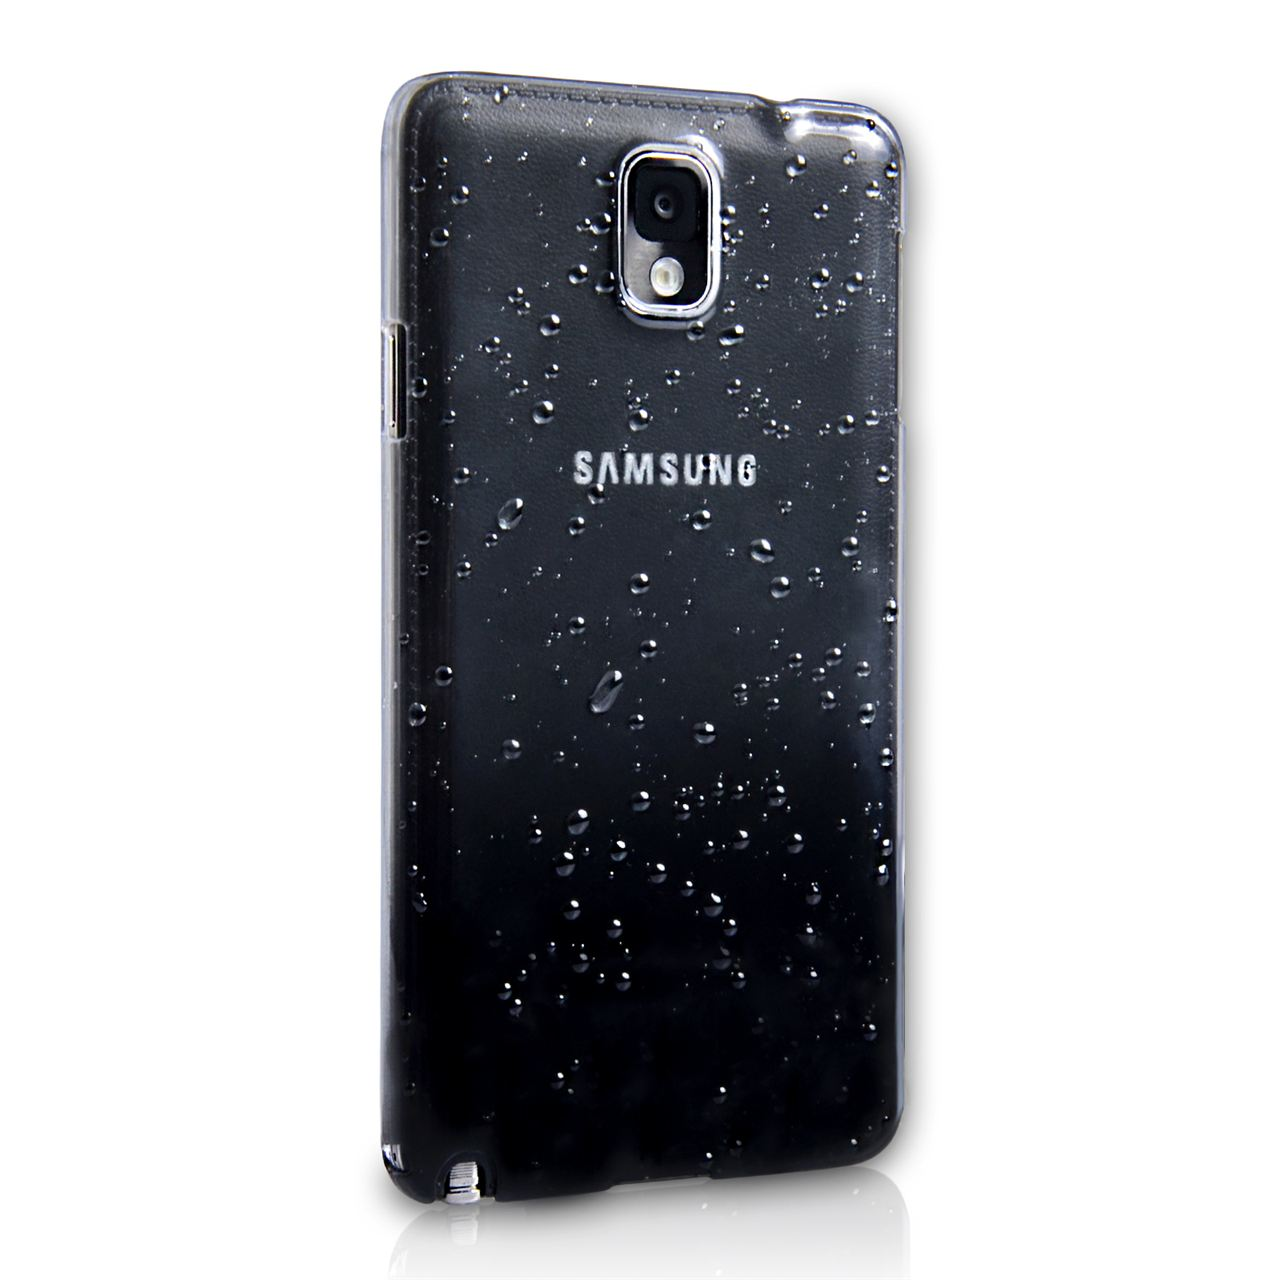 be58515502d YouSave Accessories Samsung Galaxy Note 3 Waterdrop Hard Case - Black